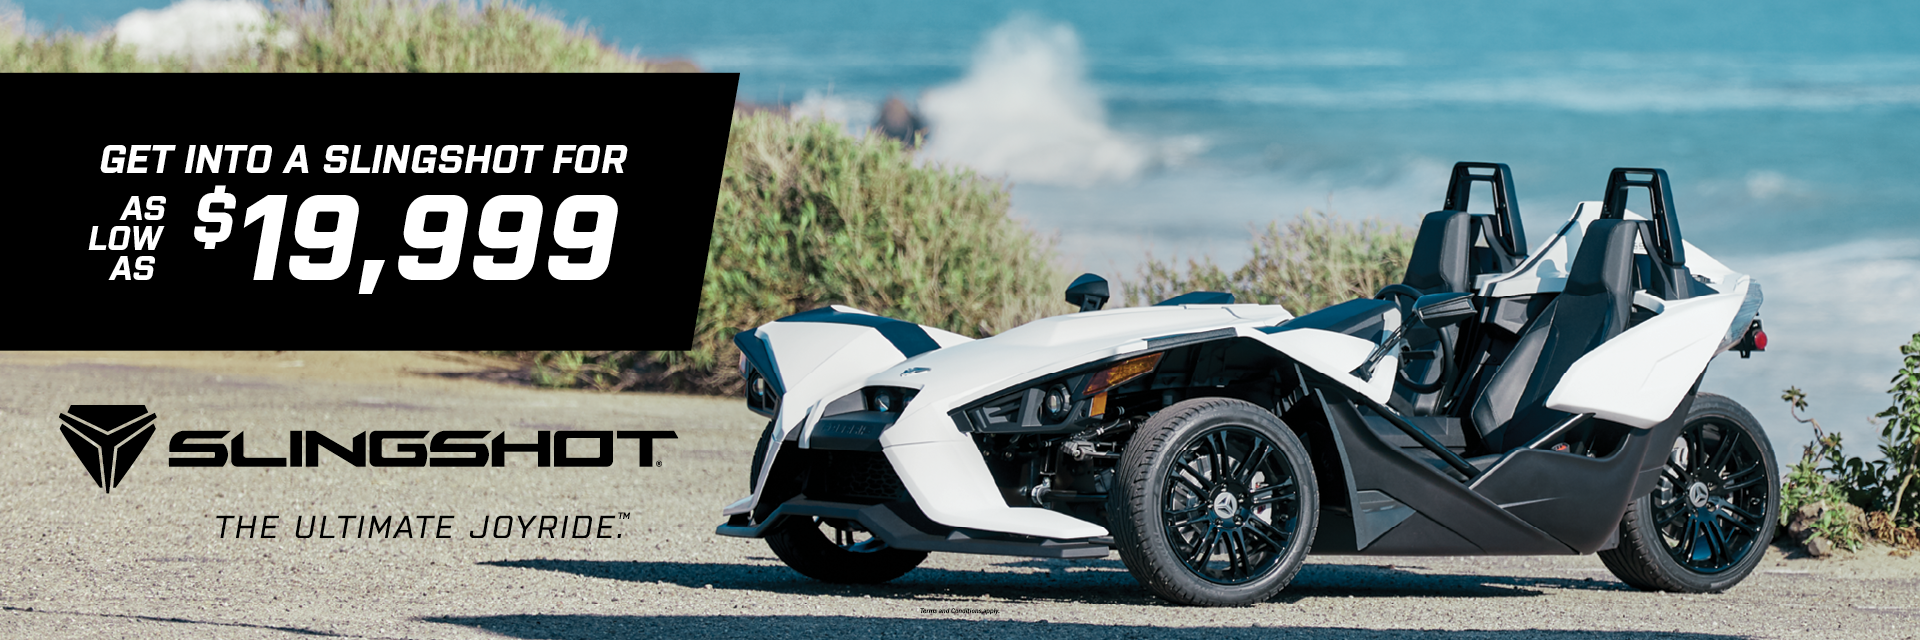 Polaris Slingshot Drive Home Promotion at Indian Motorcycle of Northern Kentucky